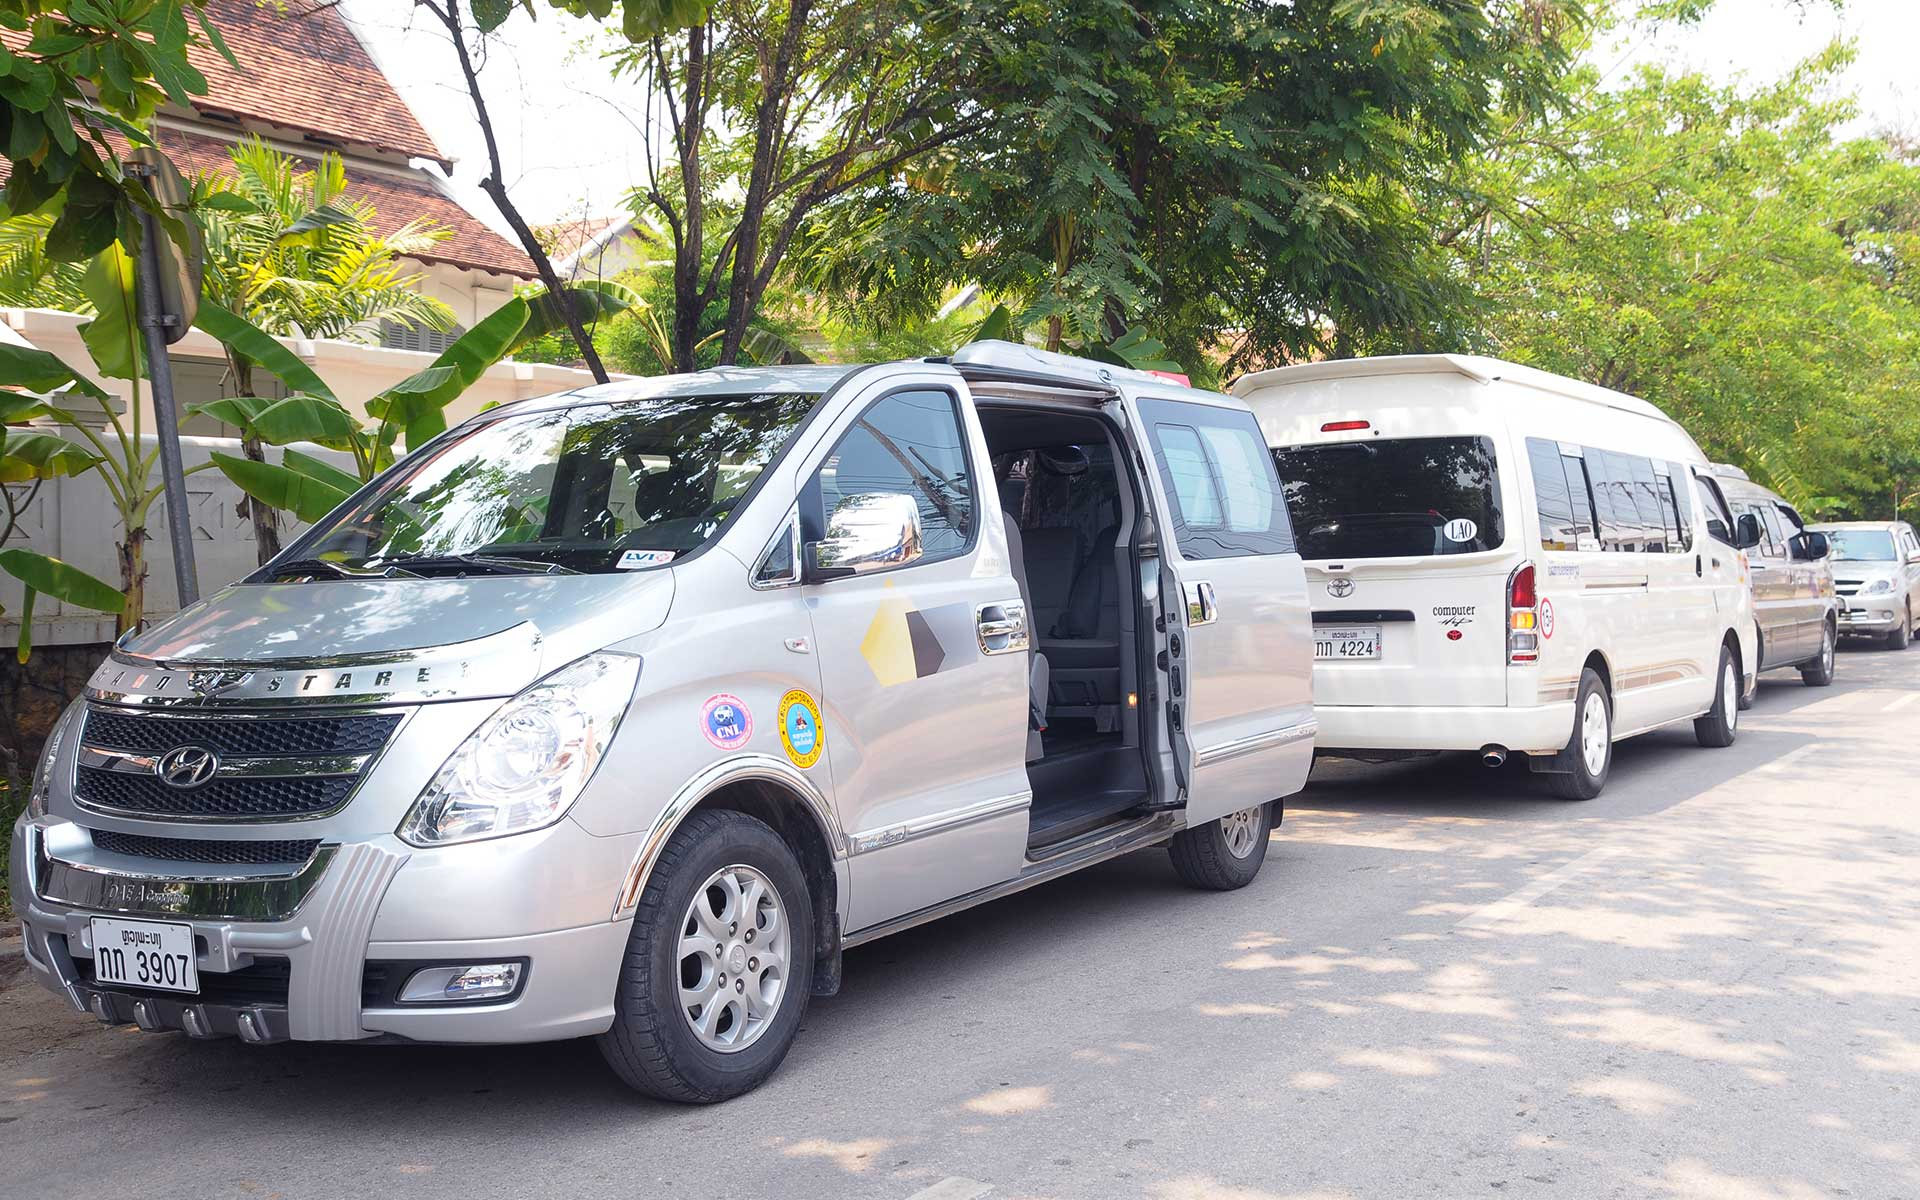 How to get from Vientiane to Luang Prabang?